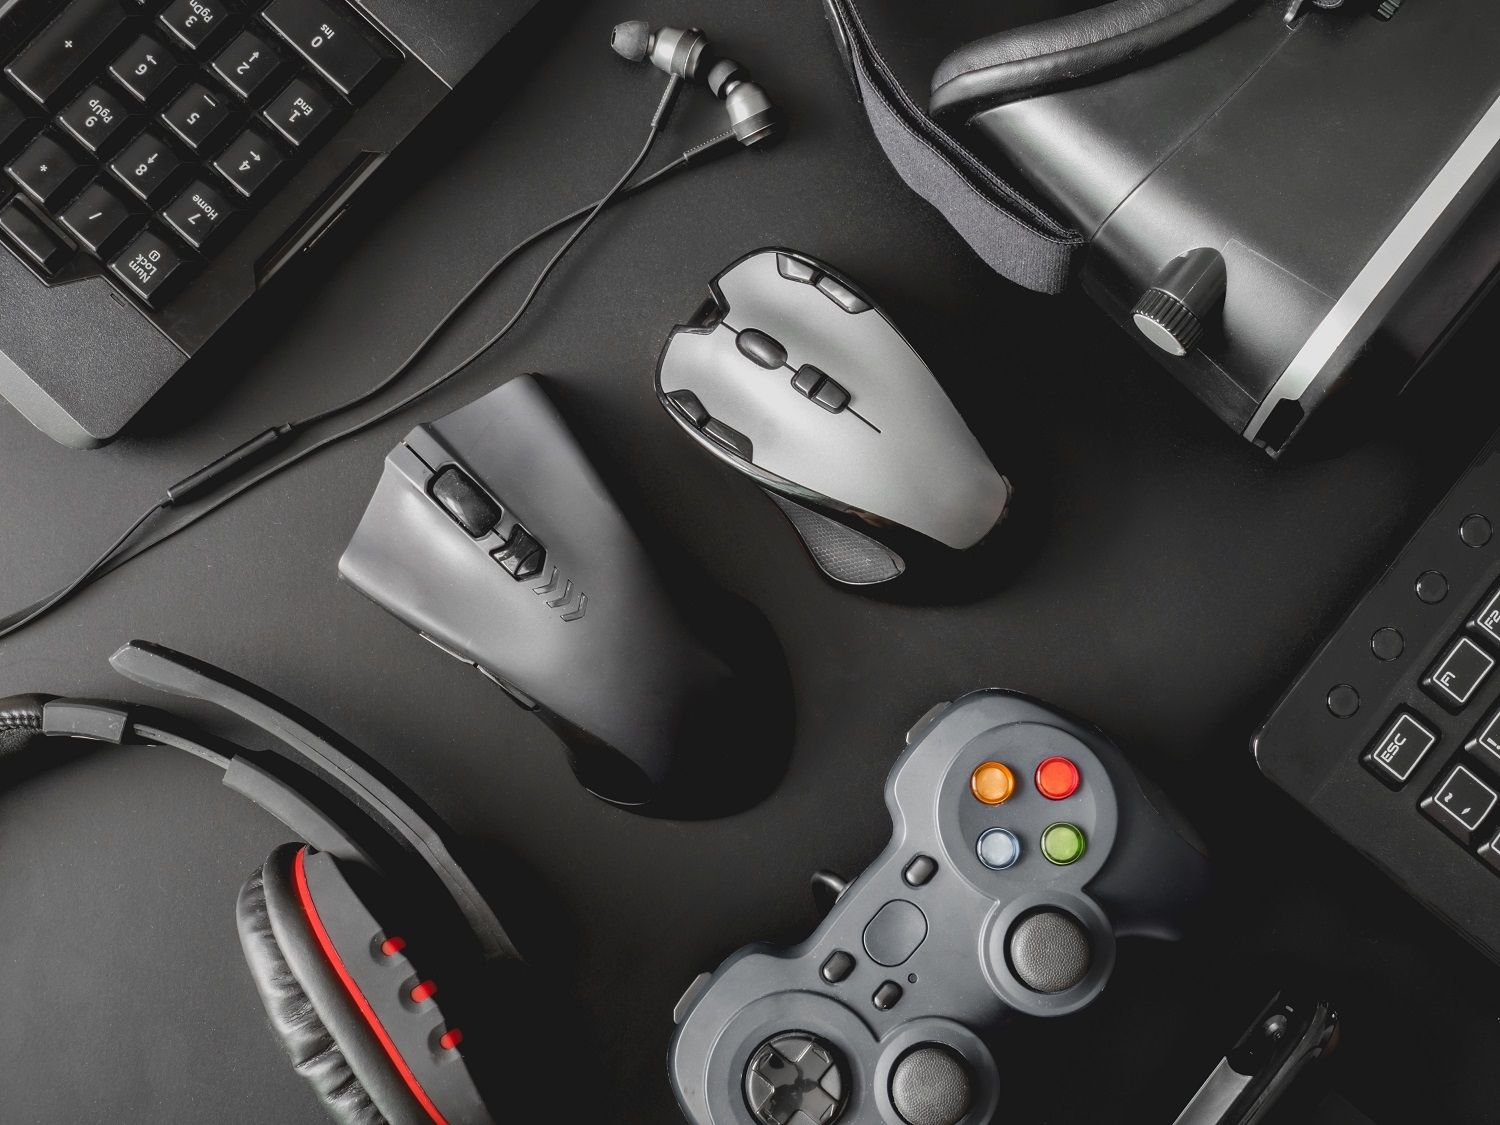 The peripherals of a gaming pc setup including a mouse, keyboard, gaming headphones, games controller and VR headset